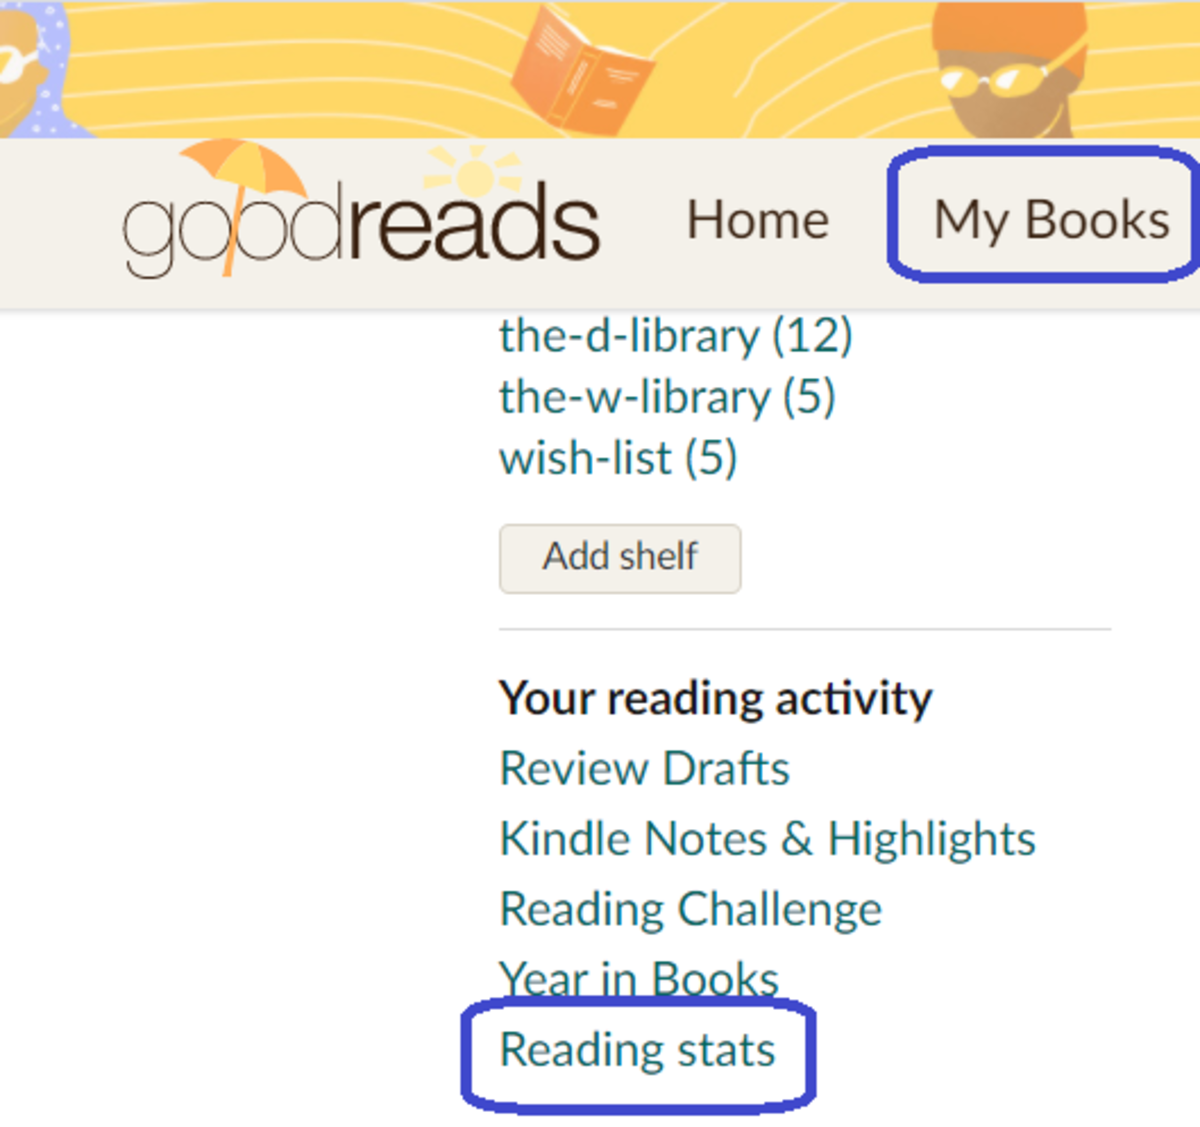 Mybooks > Your Reading Activity > Reading Stats